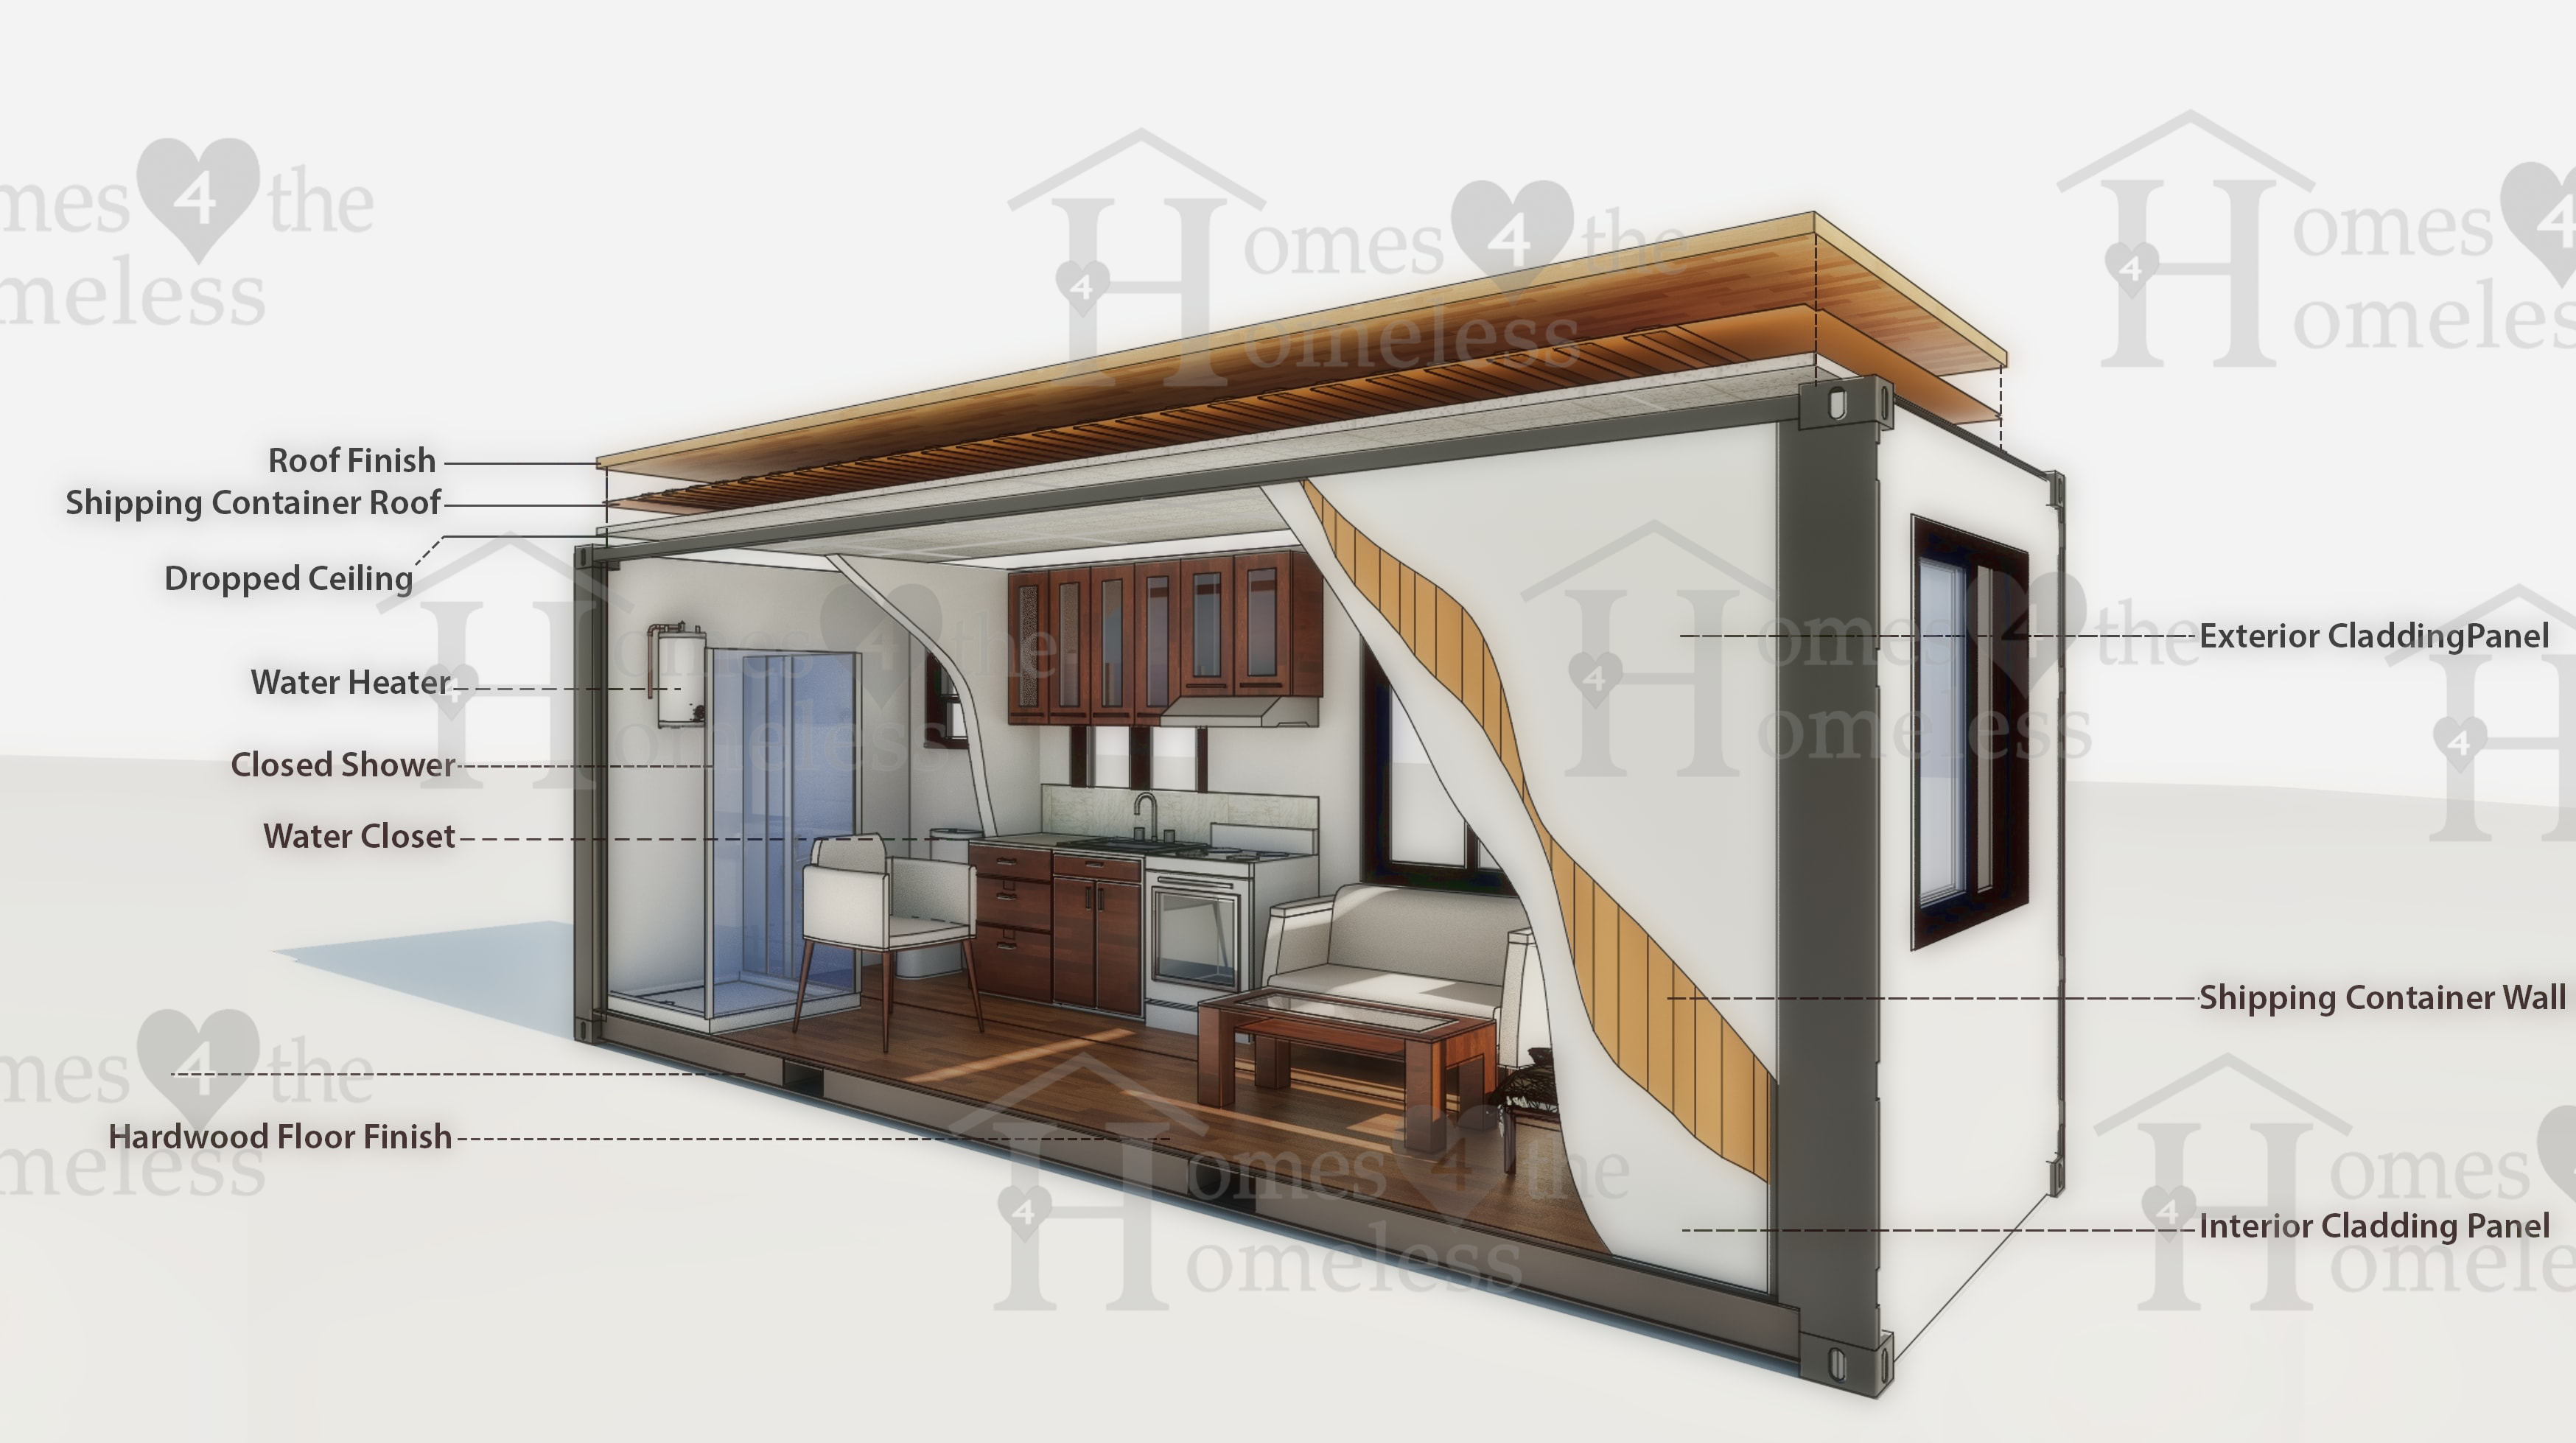 exploded view and cutaway of modular home sing